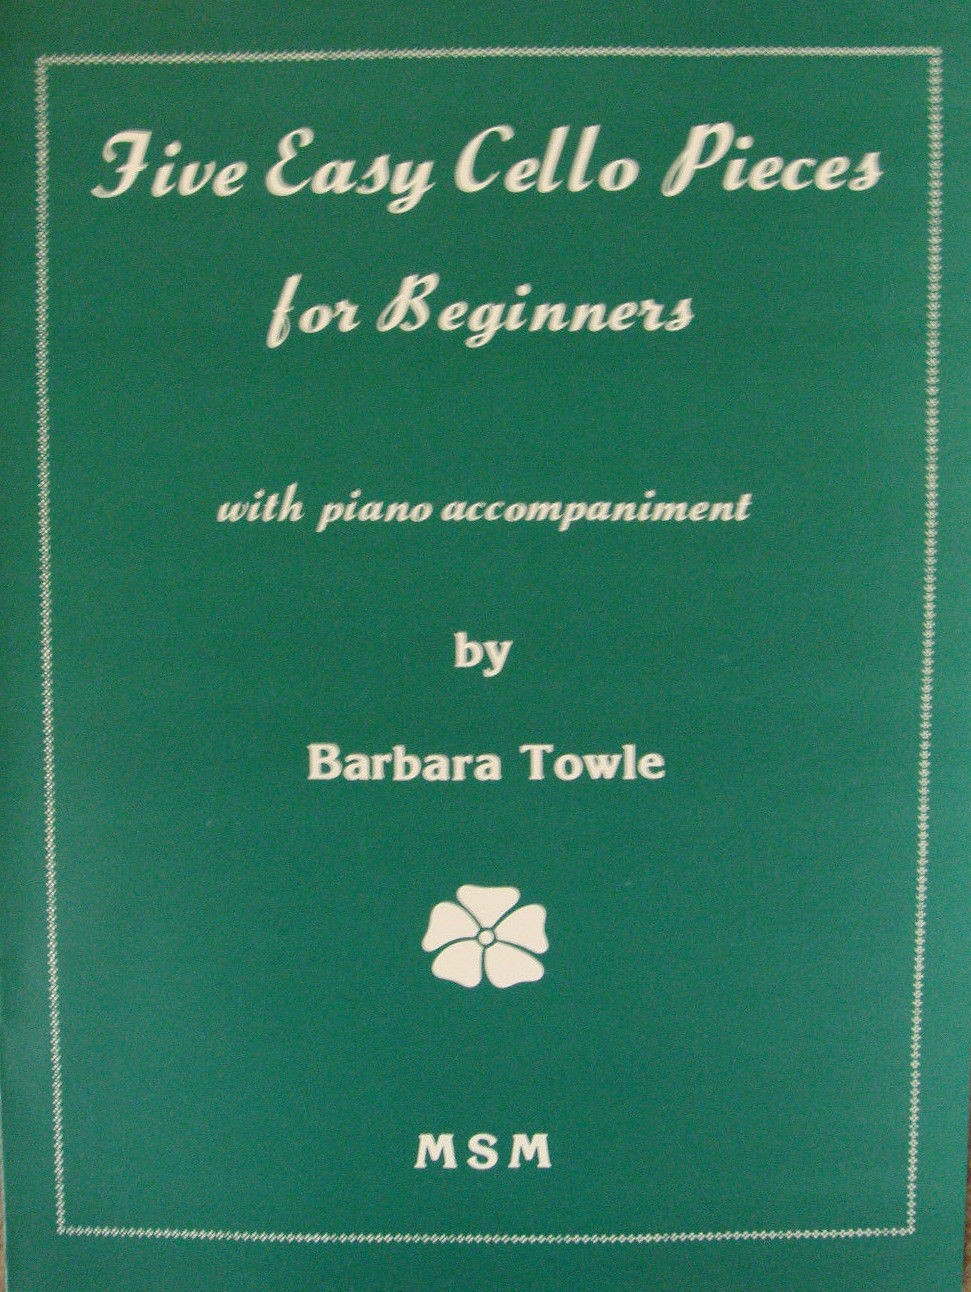 Five Easy Cello Pieces for Beginners Barbara Towle Piano Accomp S100